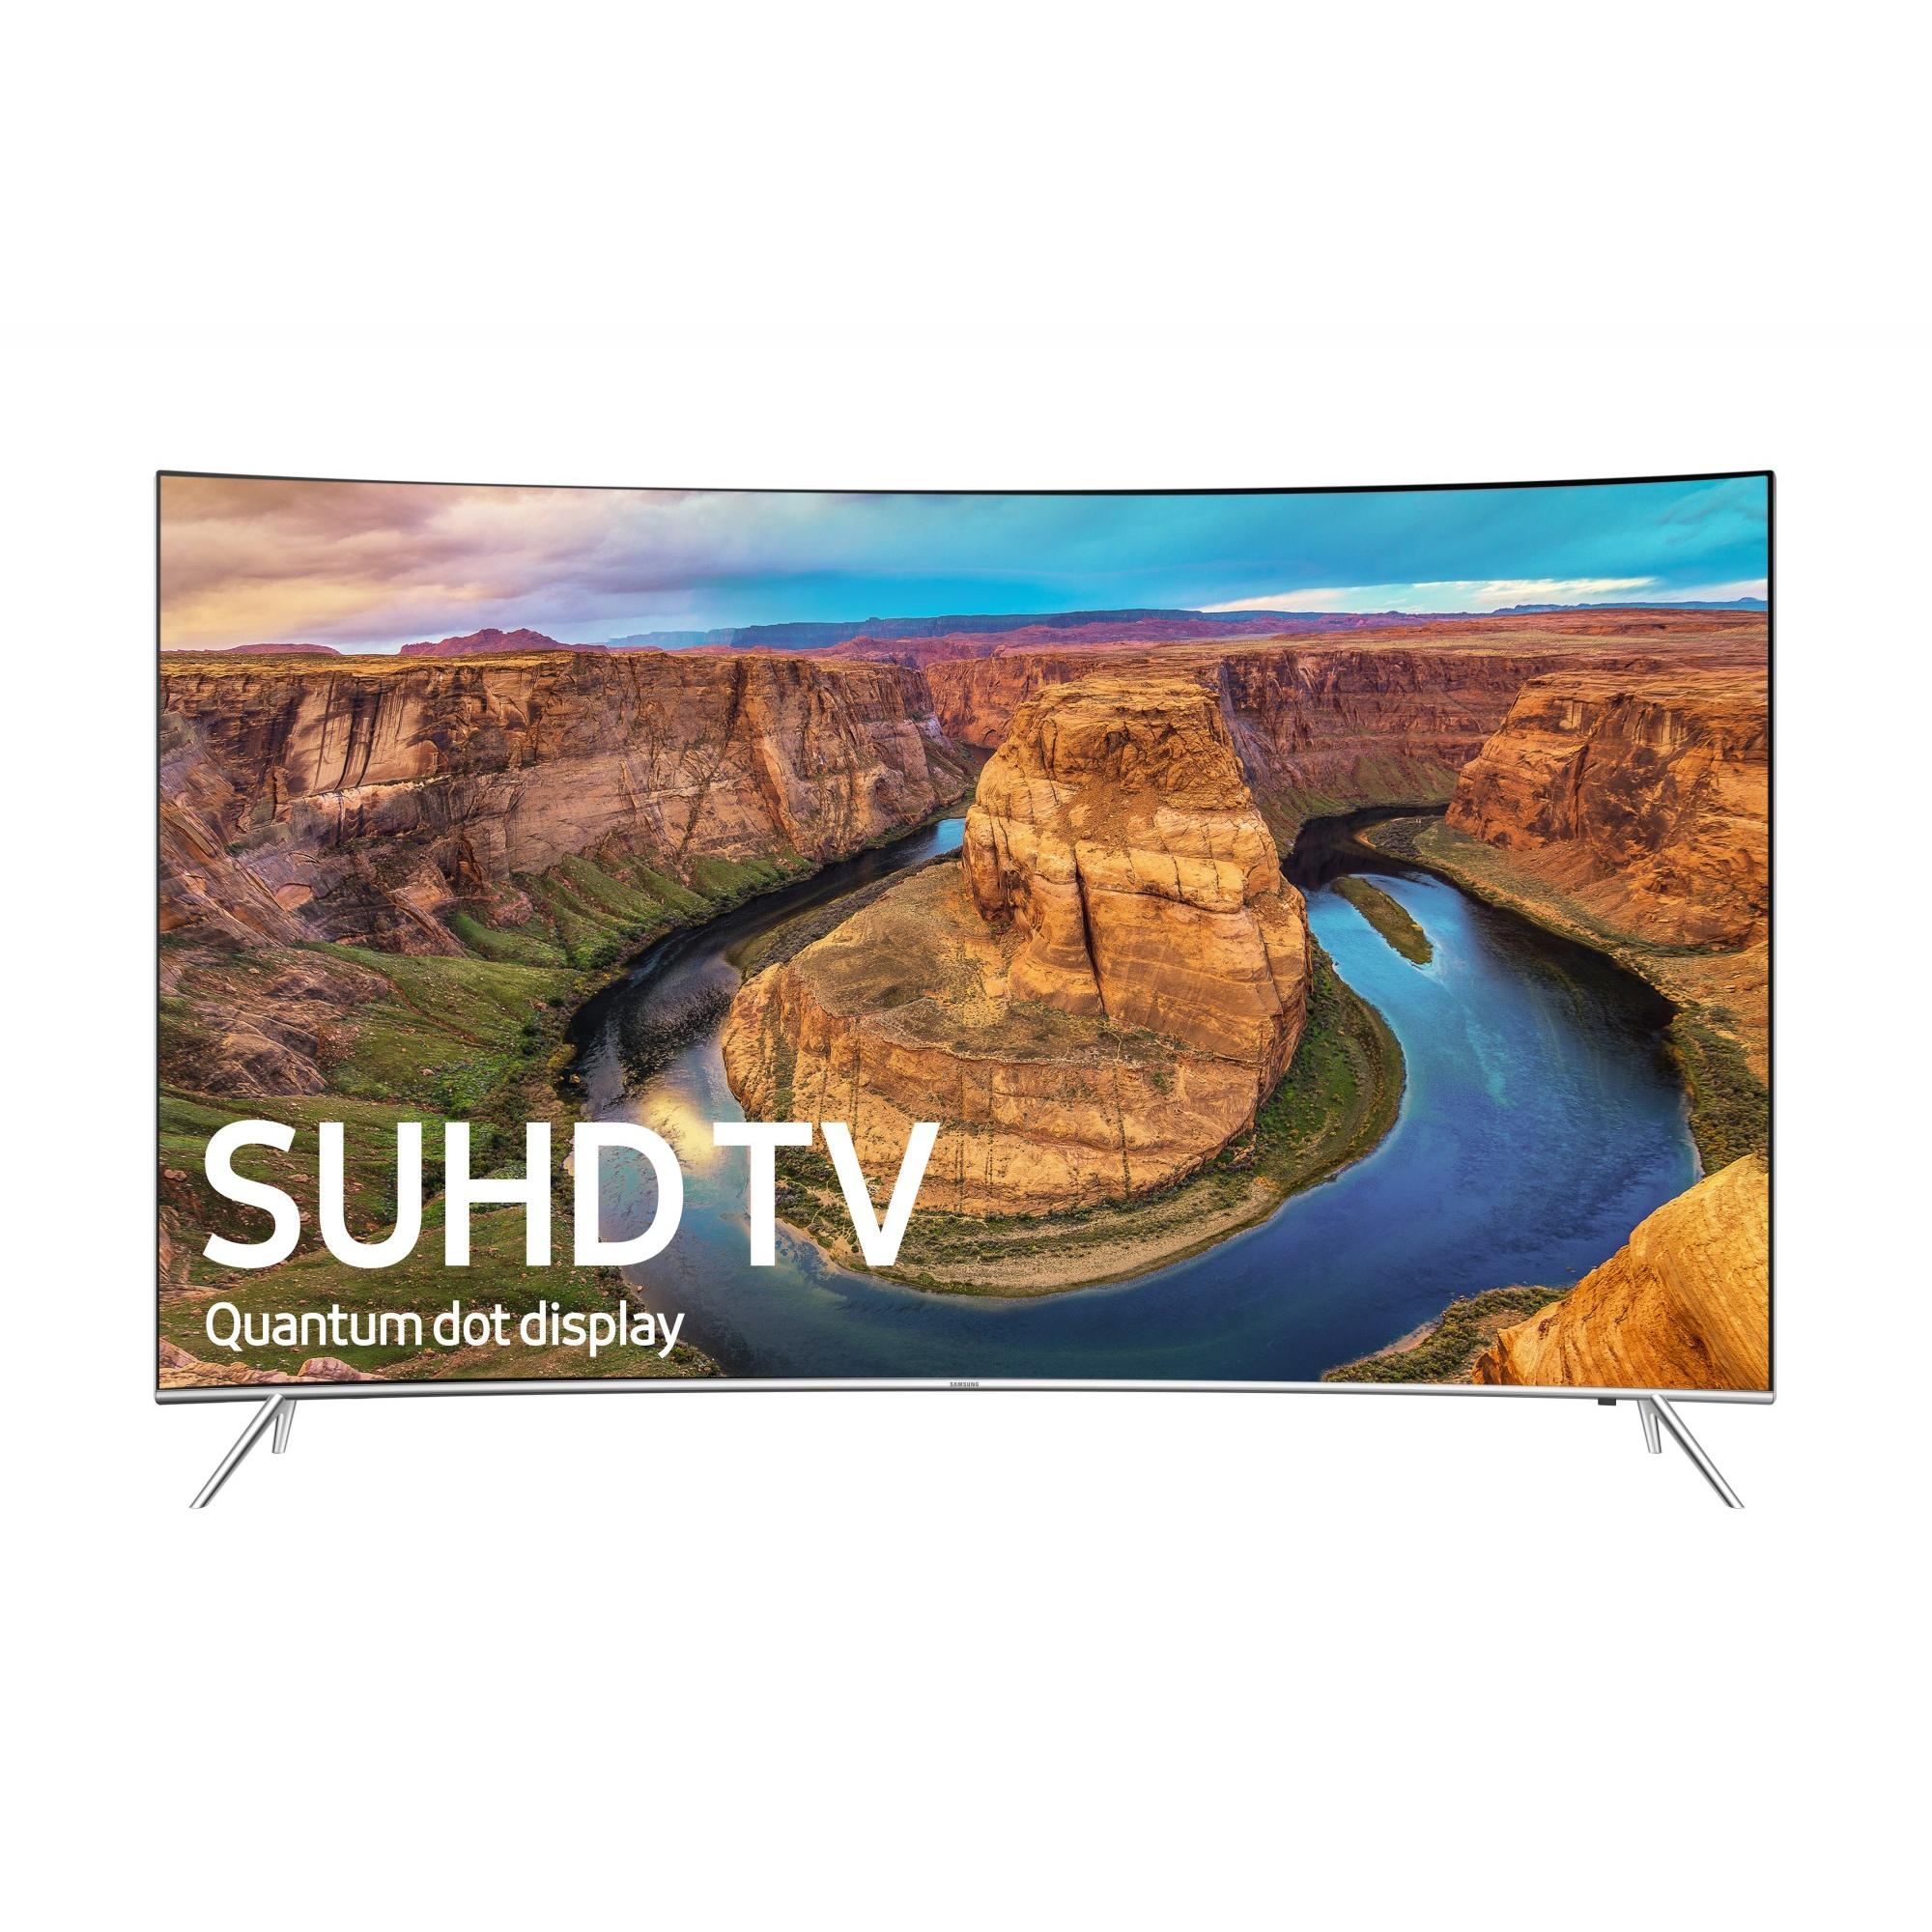 "SAMSUNG 55"" 8500 Series - Curved 4K SUHD Smart LED TV - 2160p, 120MR (Model#: UN55KS8500)"